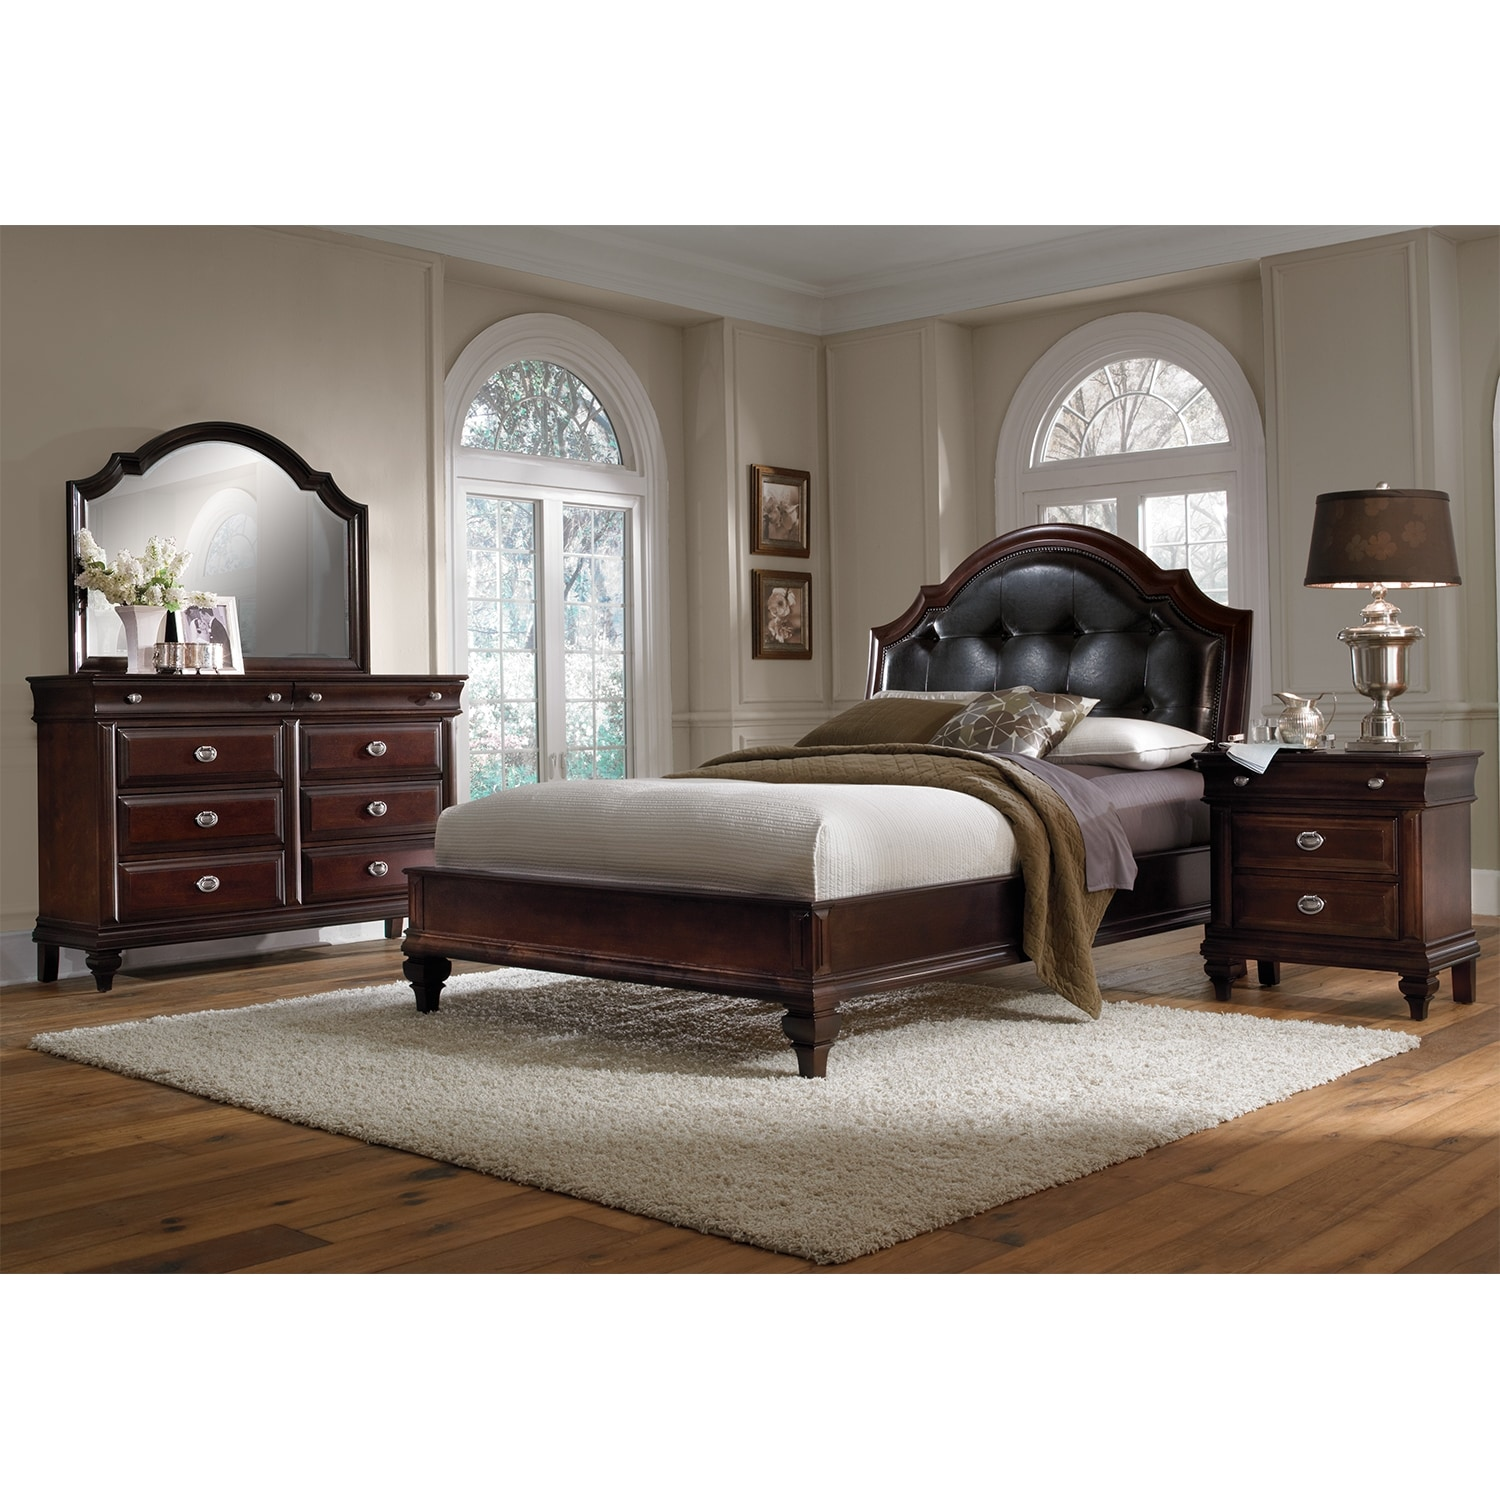 Manhattan Queen Bed - Cherry